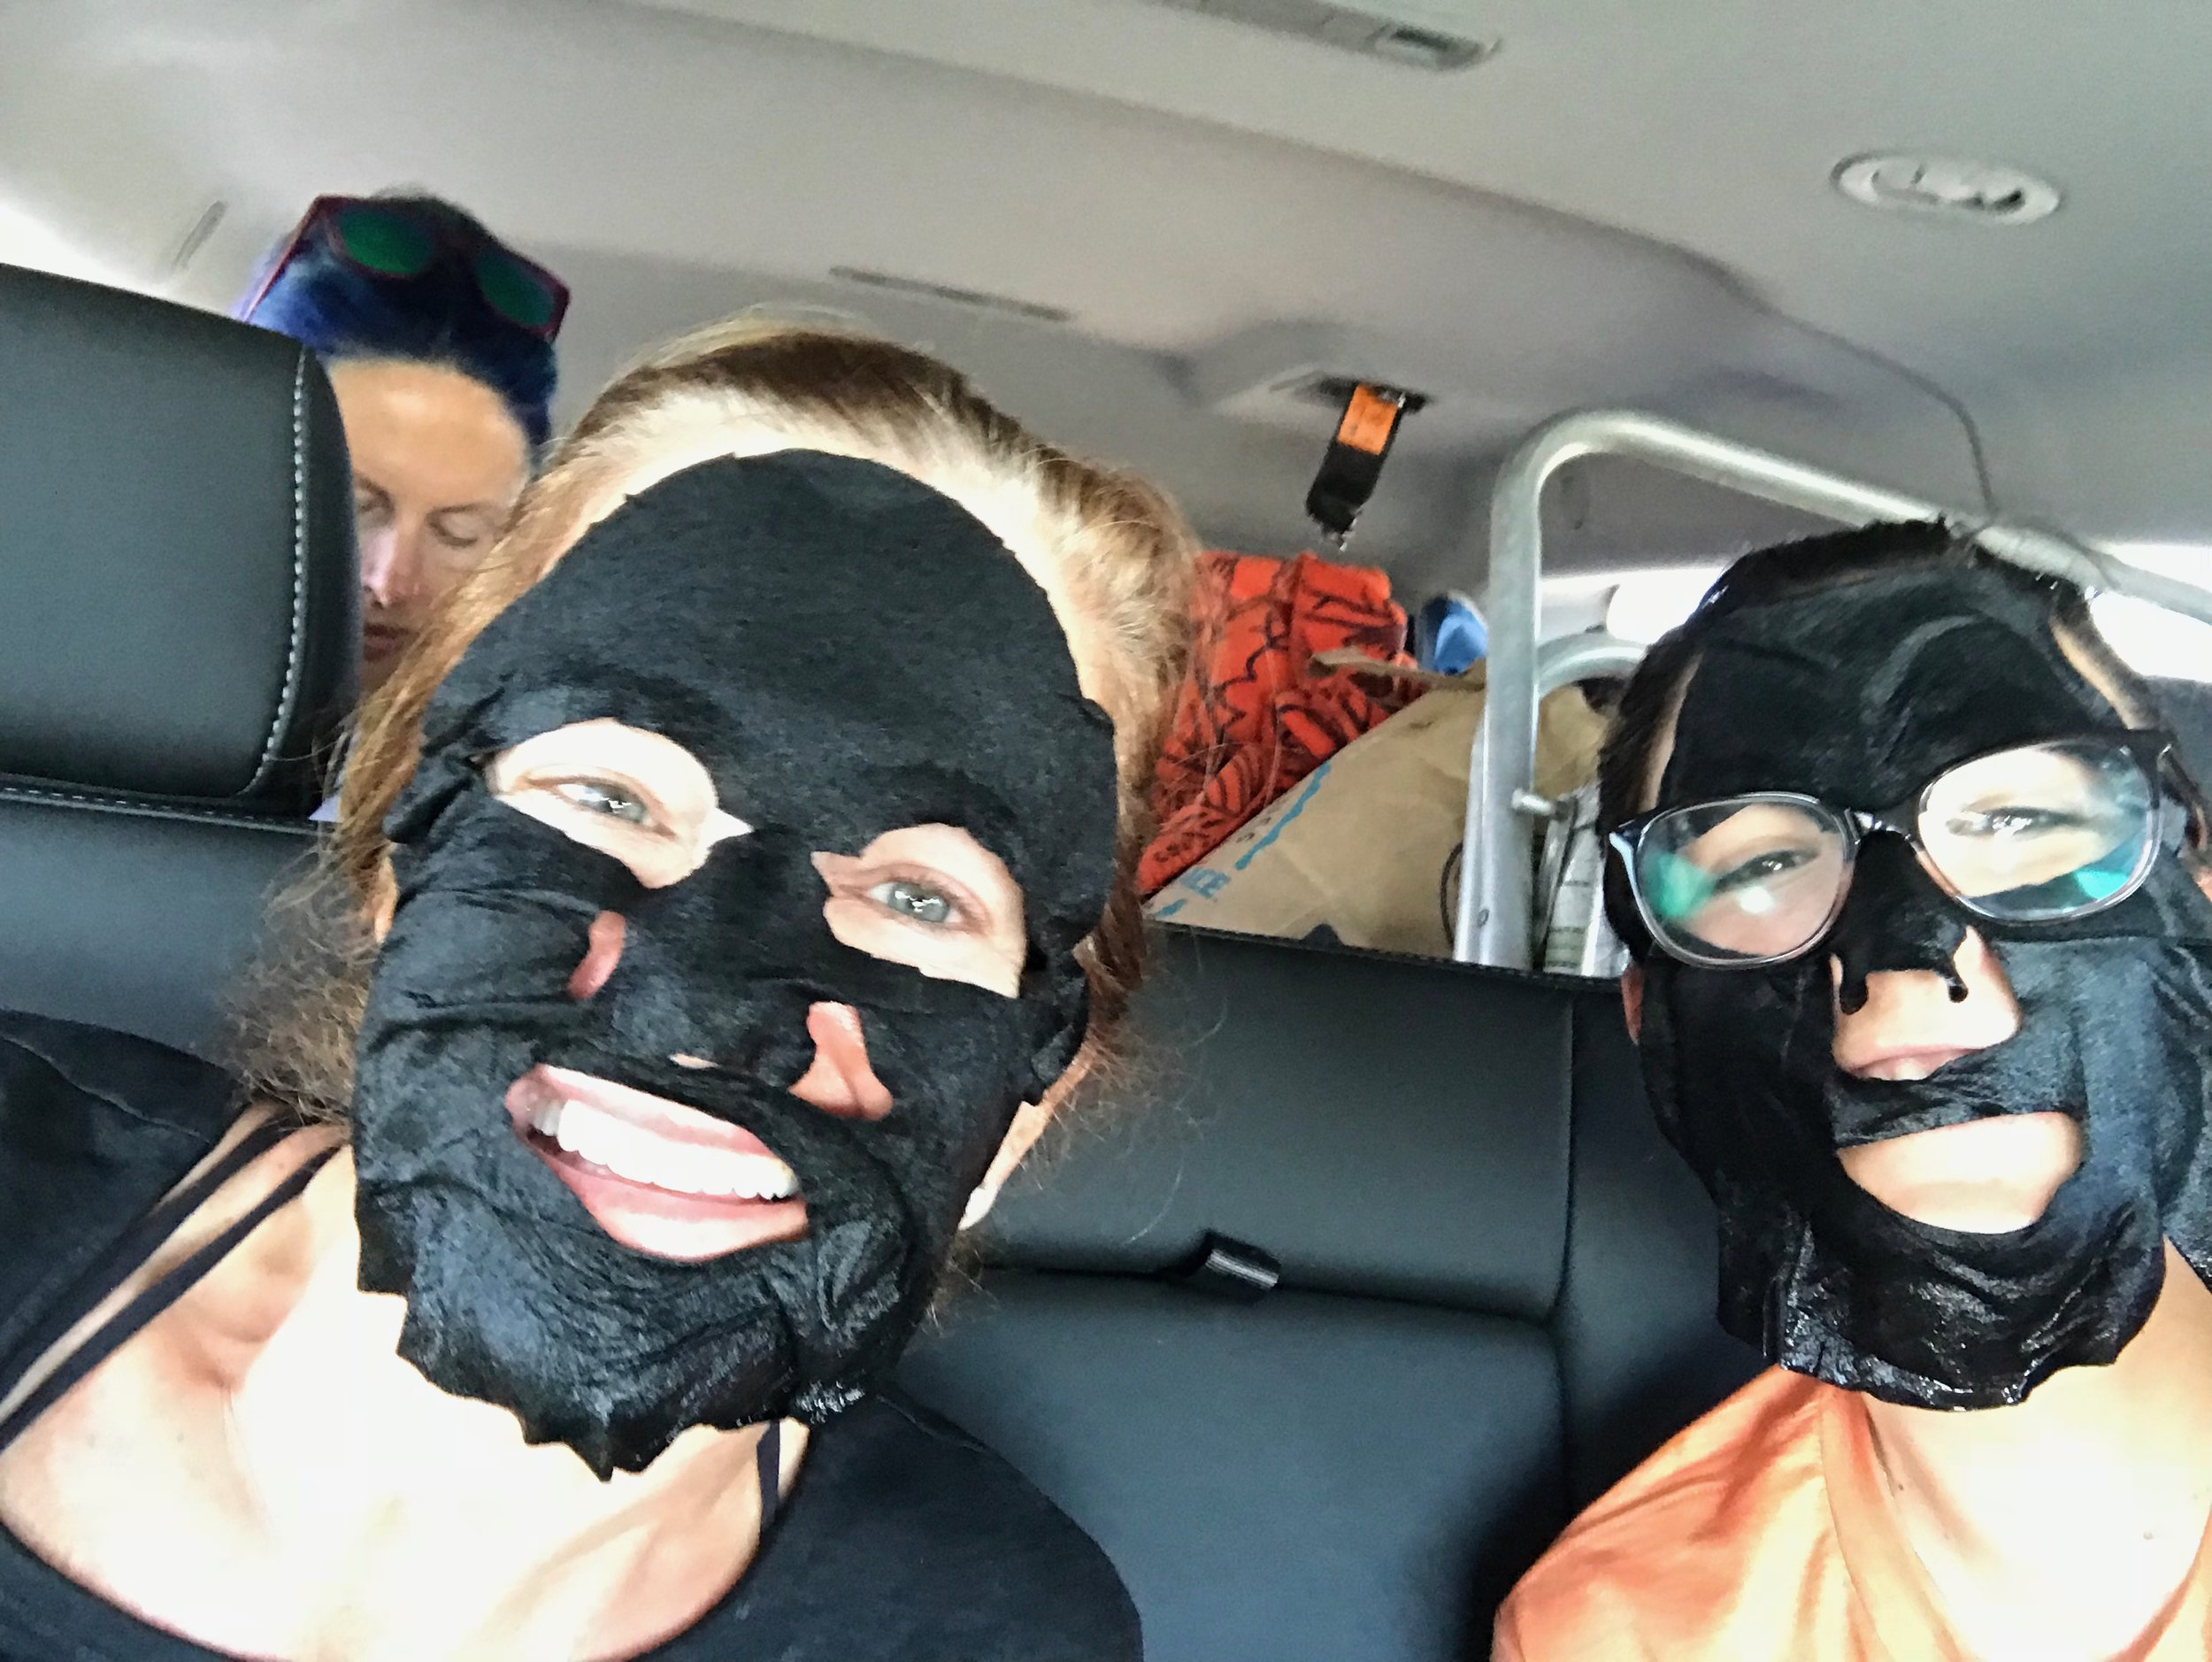 Real life versus Instagram. I carry sheet masks with me when I camp, backpack and travel and I may or may not wear them in my tent, at camp or in the car.